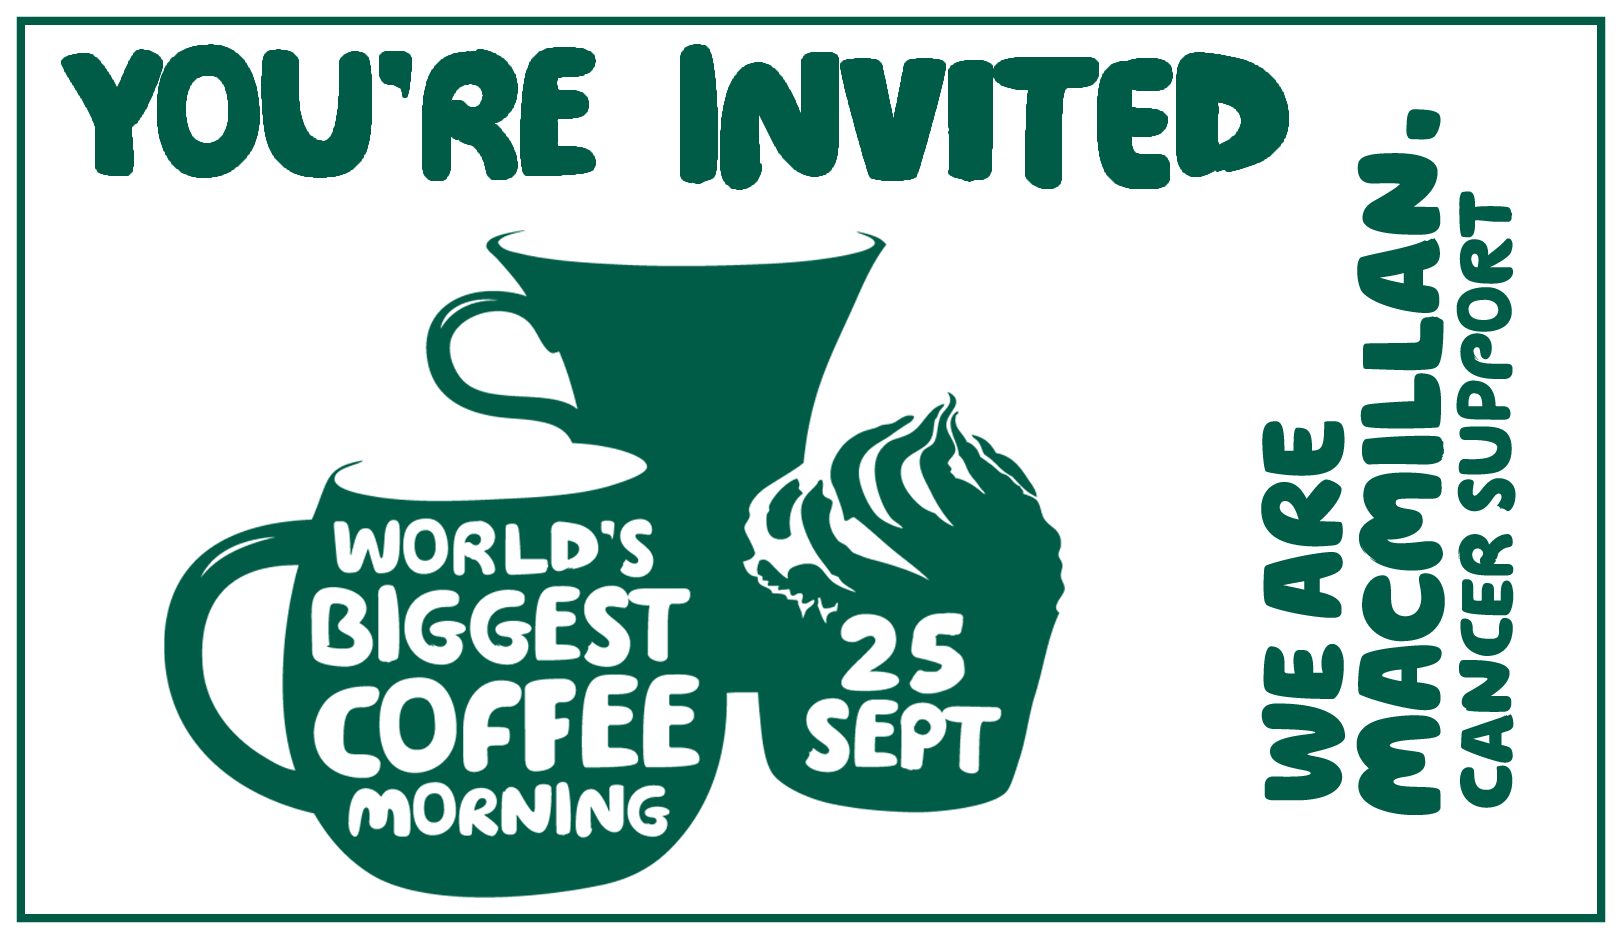 Get involved in Macmillan Coffee Mornings in the UK